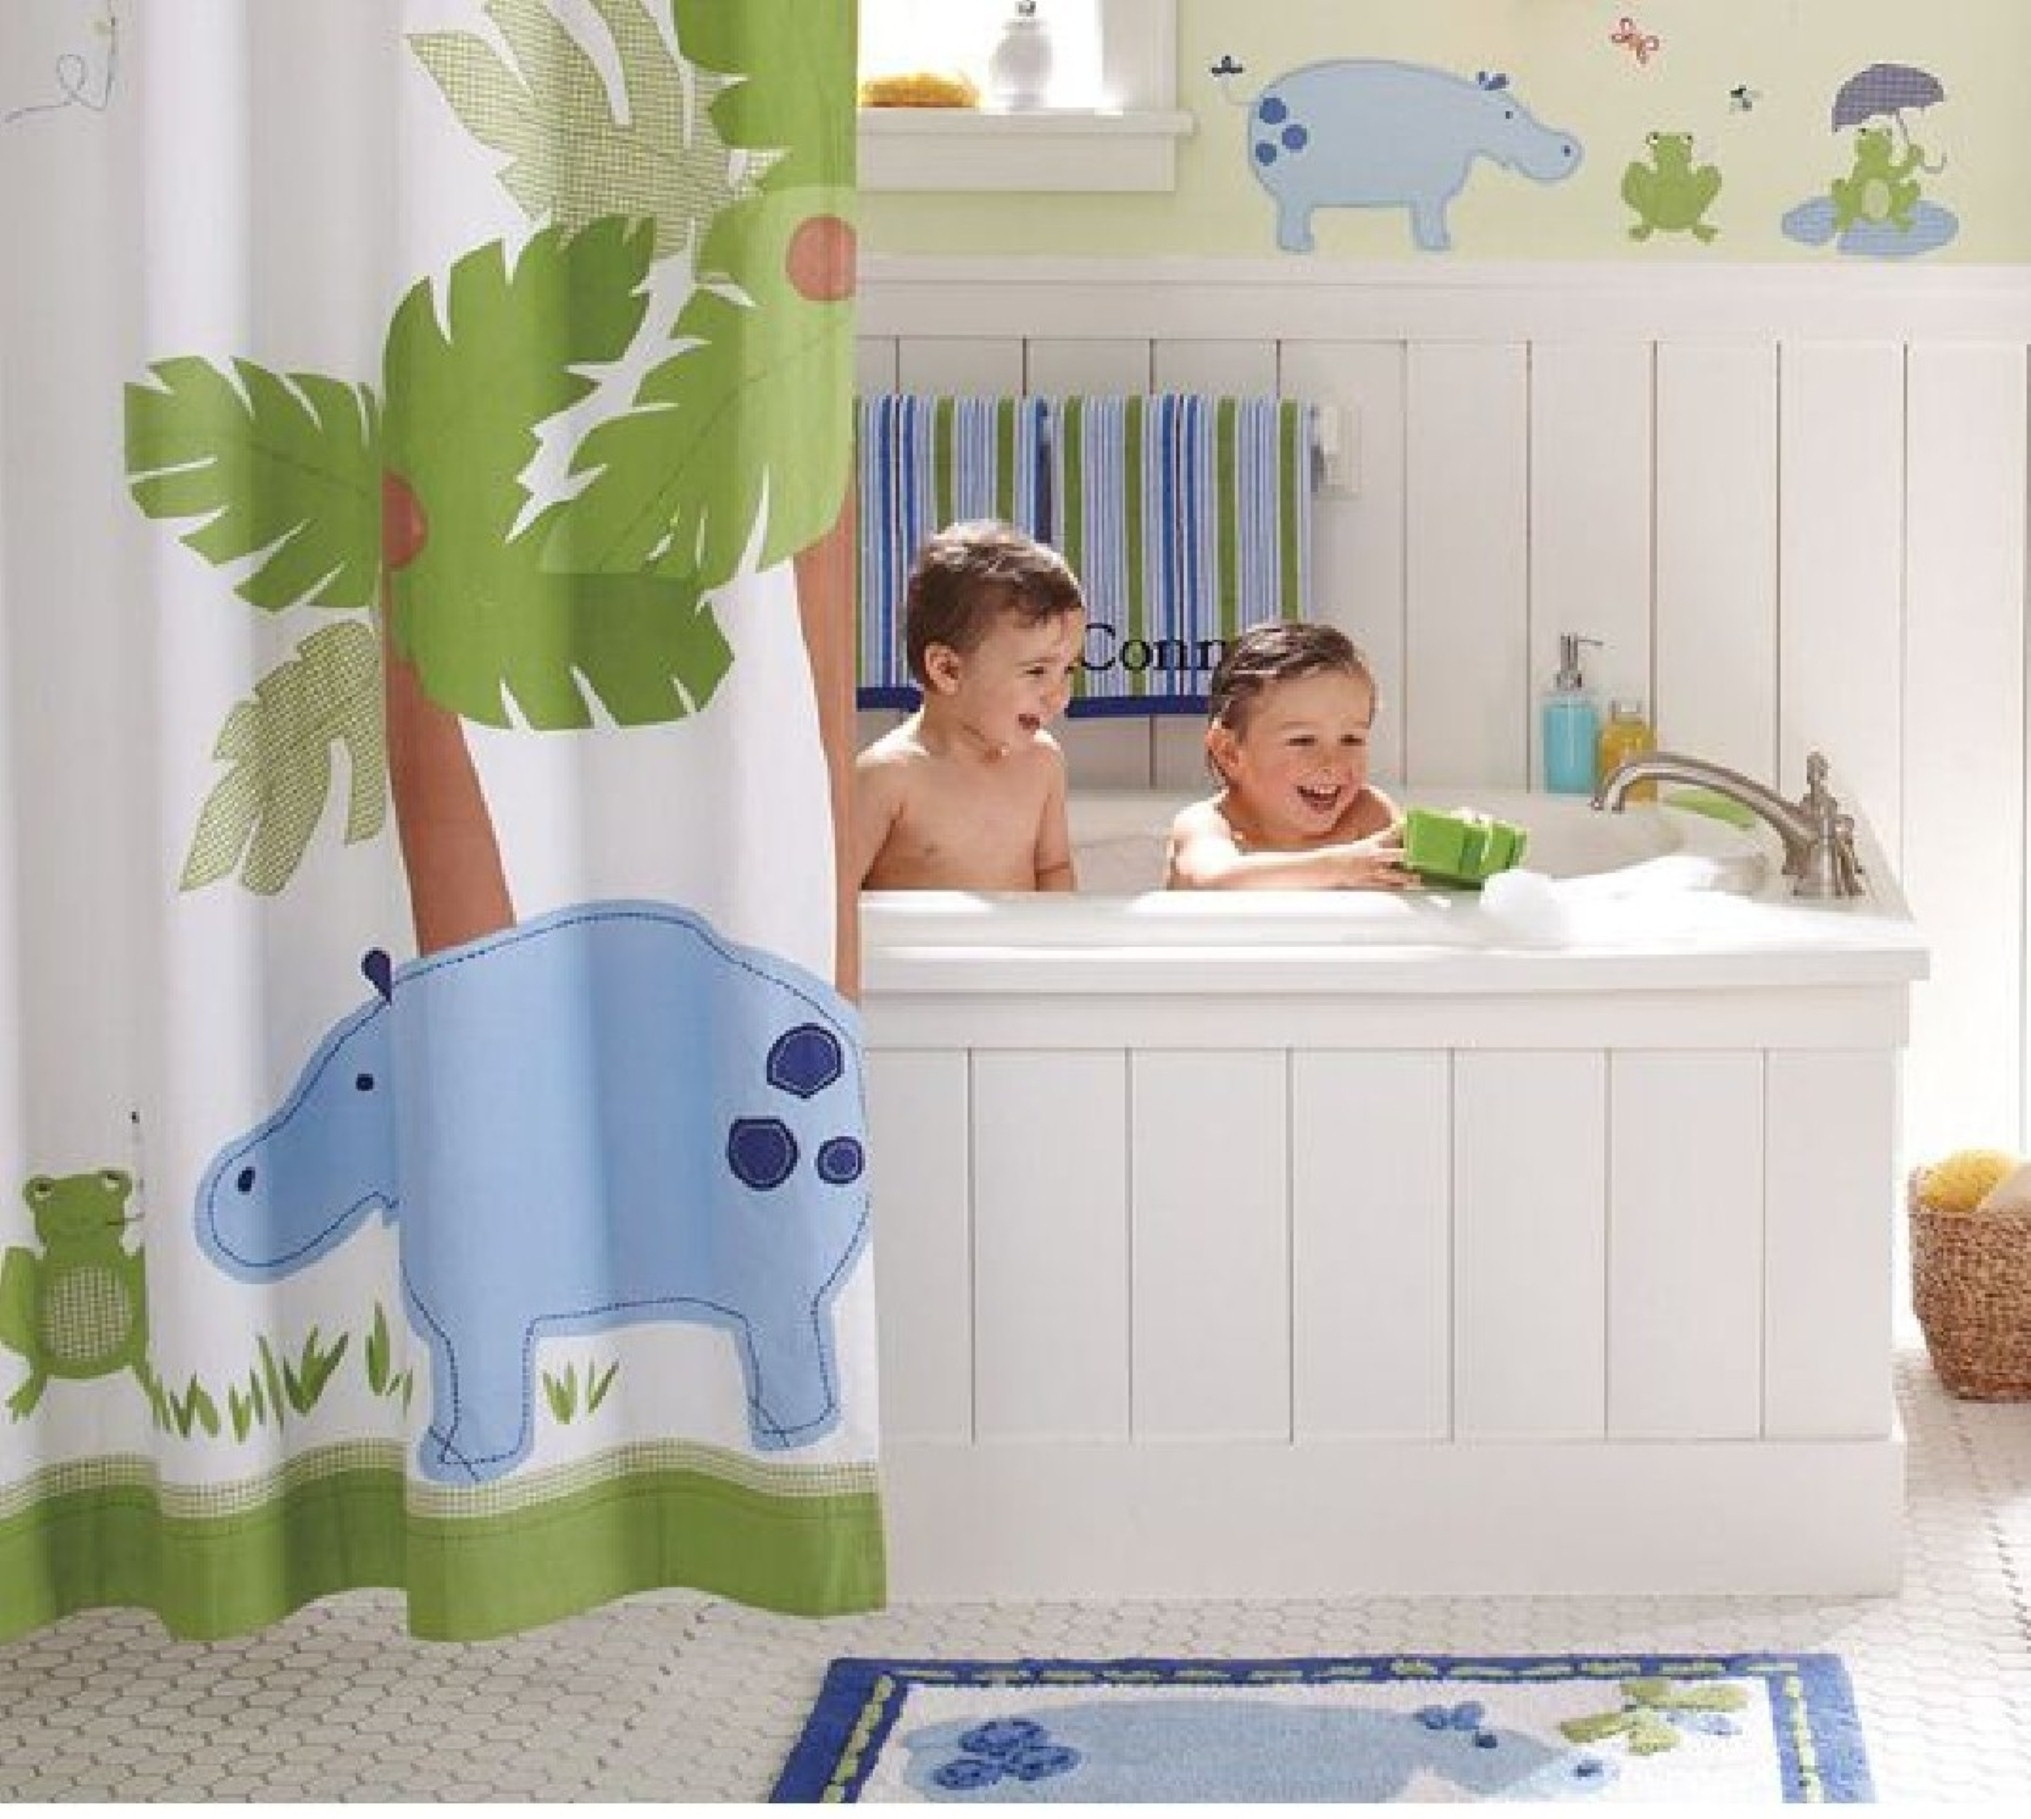 Luxury Kids Bathroom Tile Ideas To The Inspiration Design Ideas With The Best Examples Of The Luxury Kids Bathroom (Image 14 of 15)